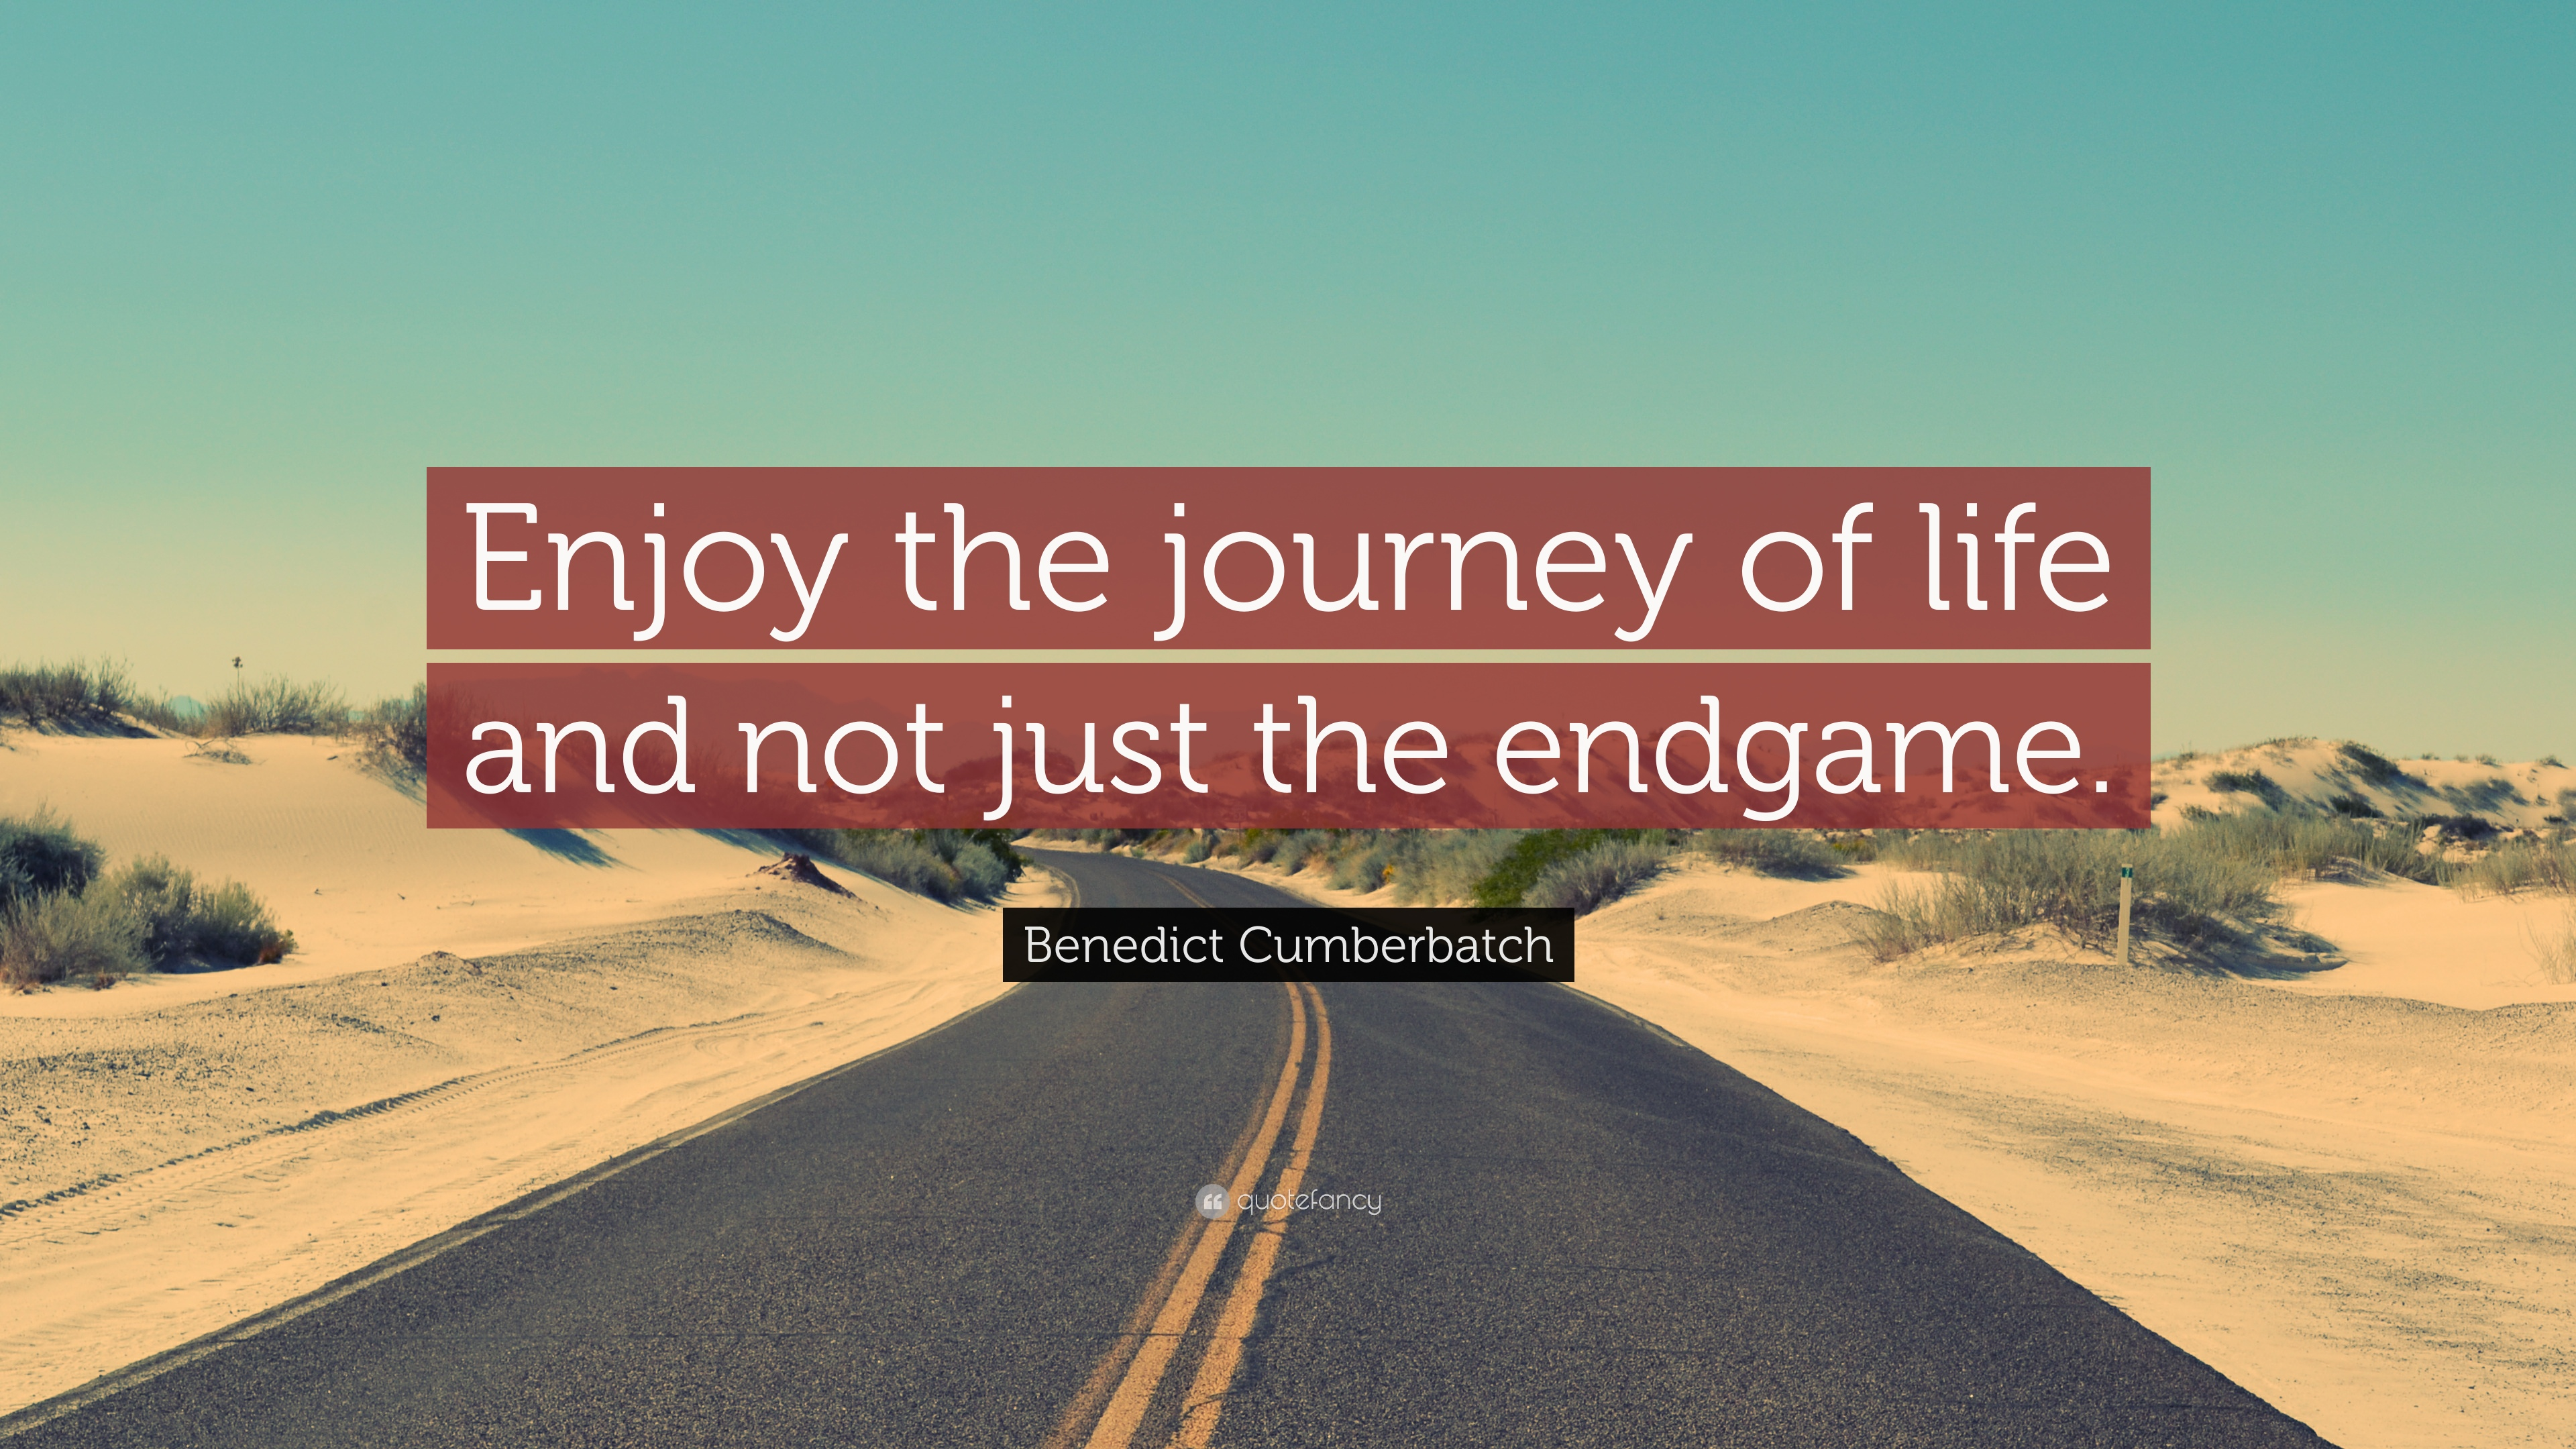 Benedict Cumberbatch Quote: U201cEnjoy The Journey Of Life And Not Just The  Endgame.